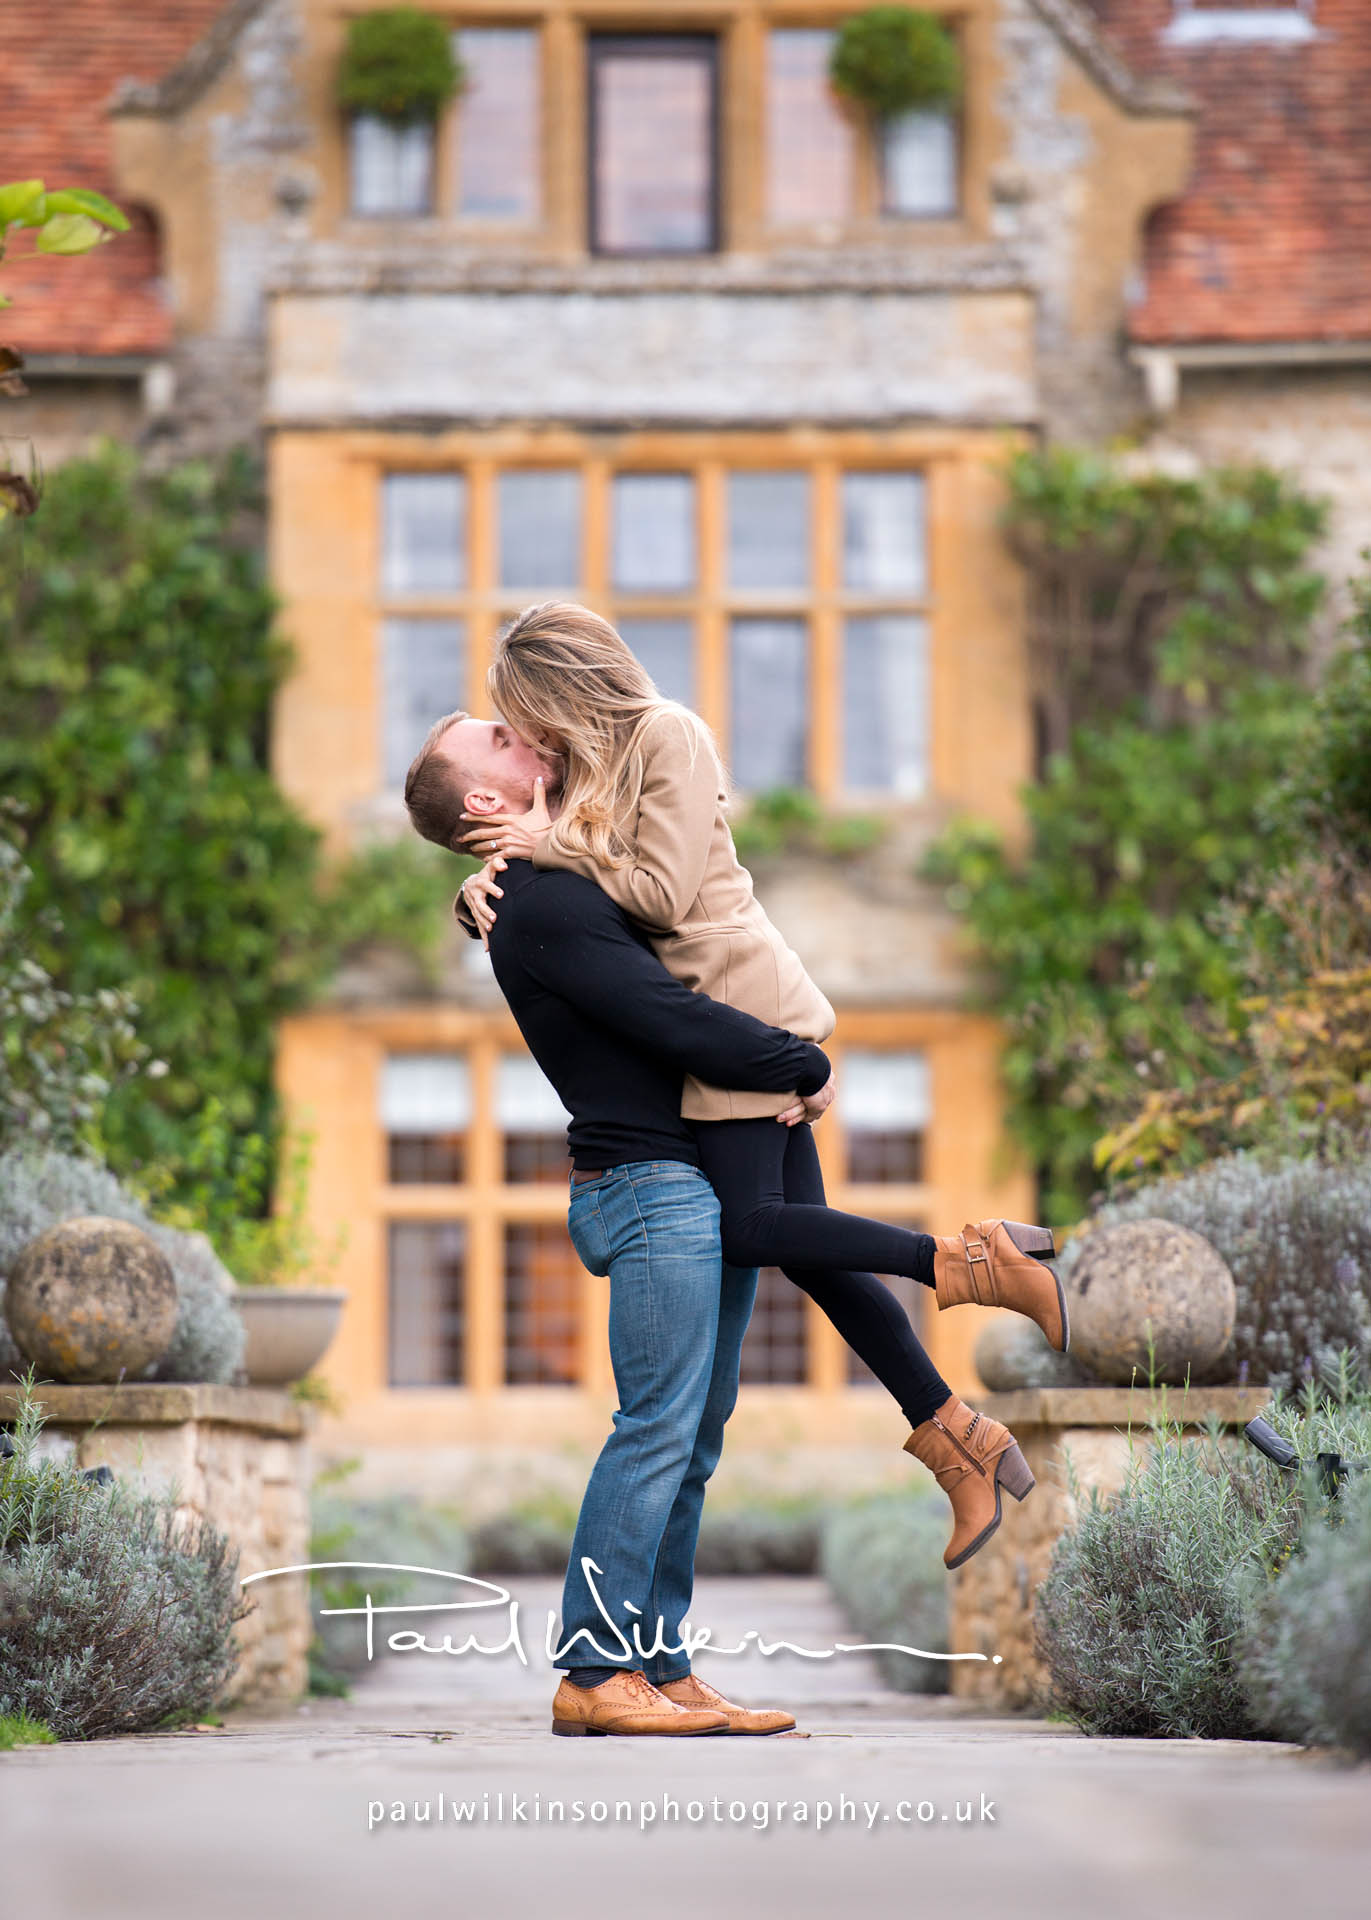 It's lovely to be swept along in the moment when you're photographing an engagement (particularly when it's only just happened!)